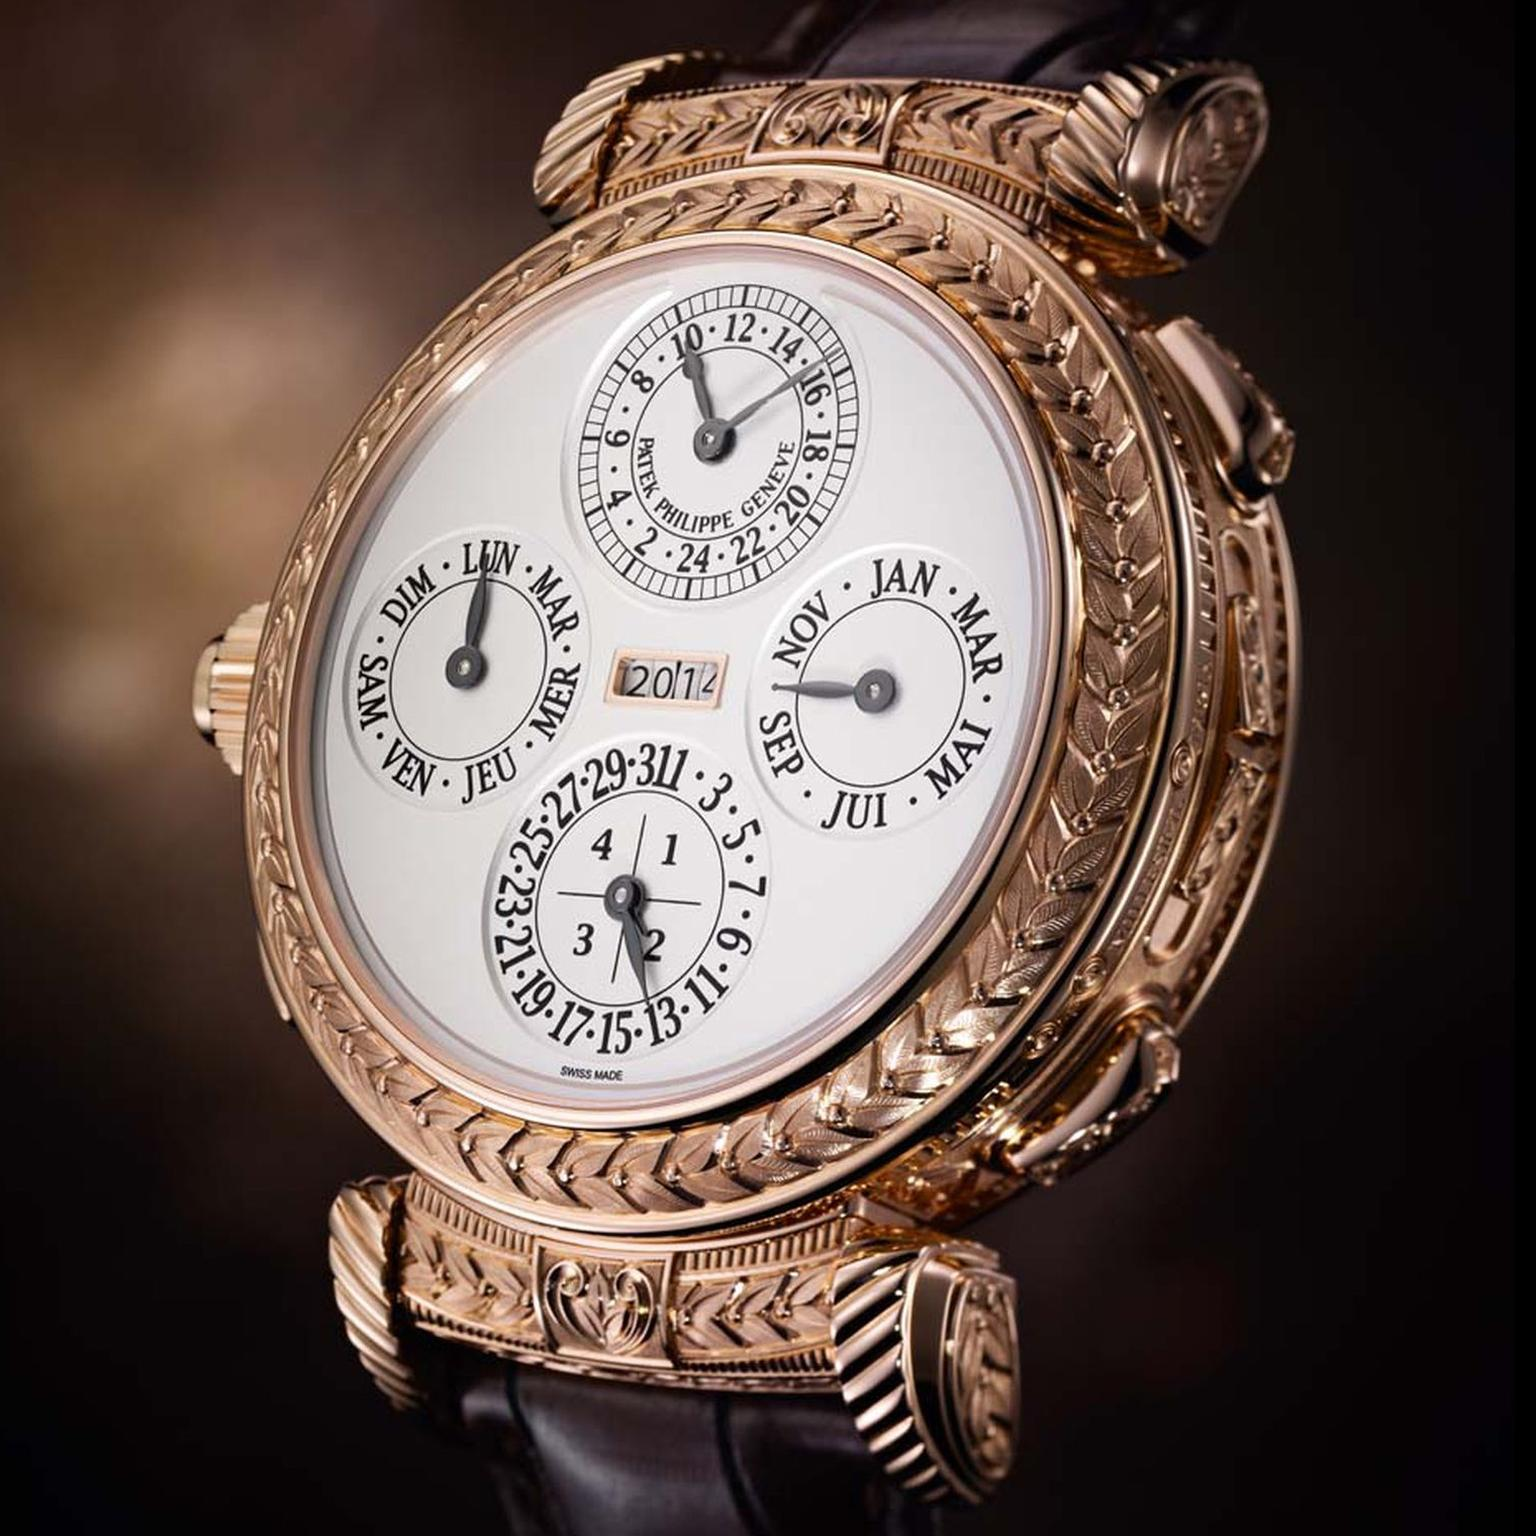 The 20 complications in the new Patek Philippe Grandmaster Chime Ref. 5175 watch include a grande and petite sonnerie (the former chiming quarter and full hours as long as the watch is wound; the latter just the hours) and a minute repeater.